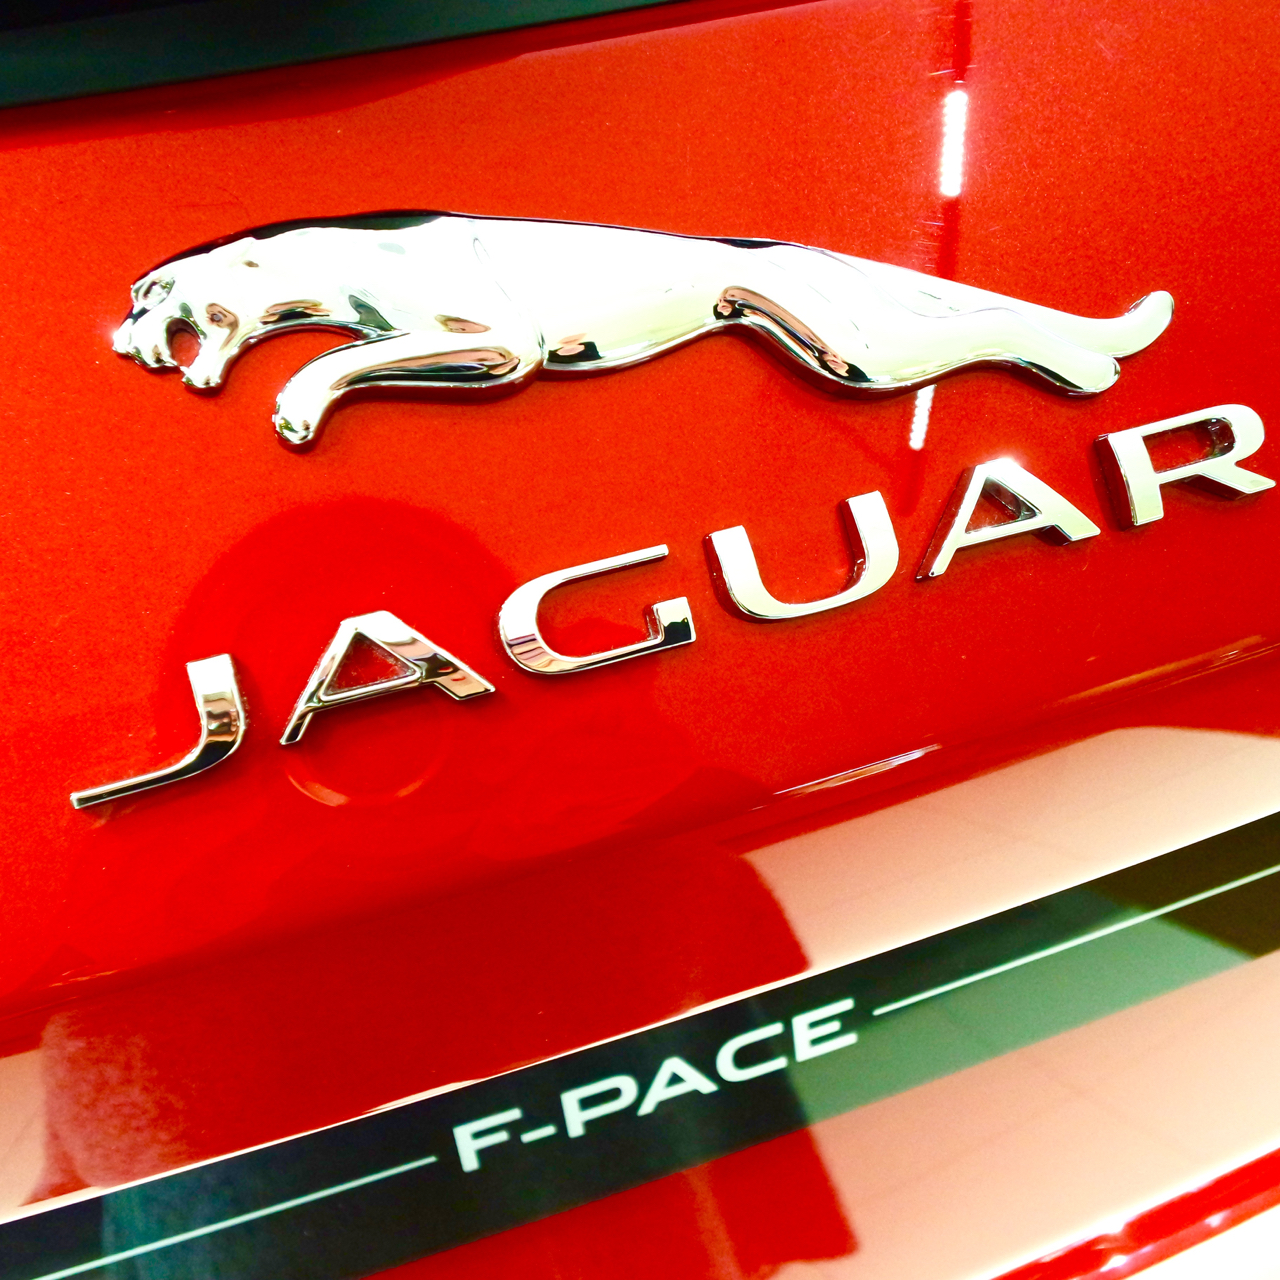 Premiere Jaguar F-PACE Pepper And Gold Cars München Munich Lifestyle LuxuryGoods